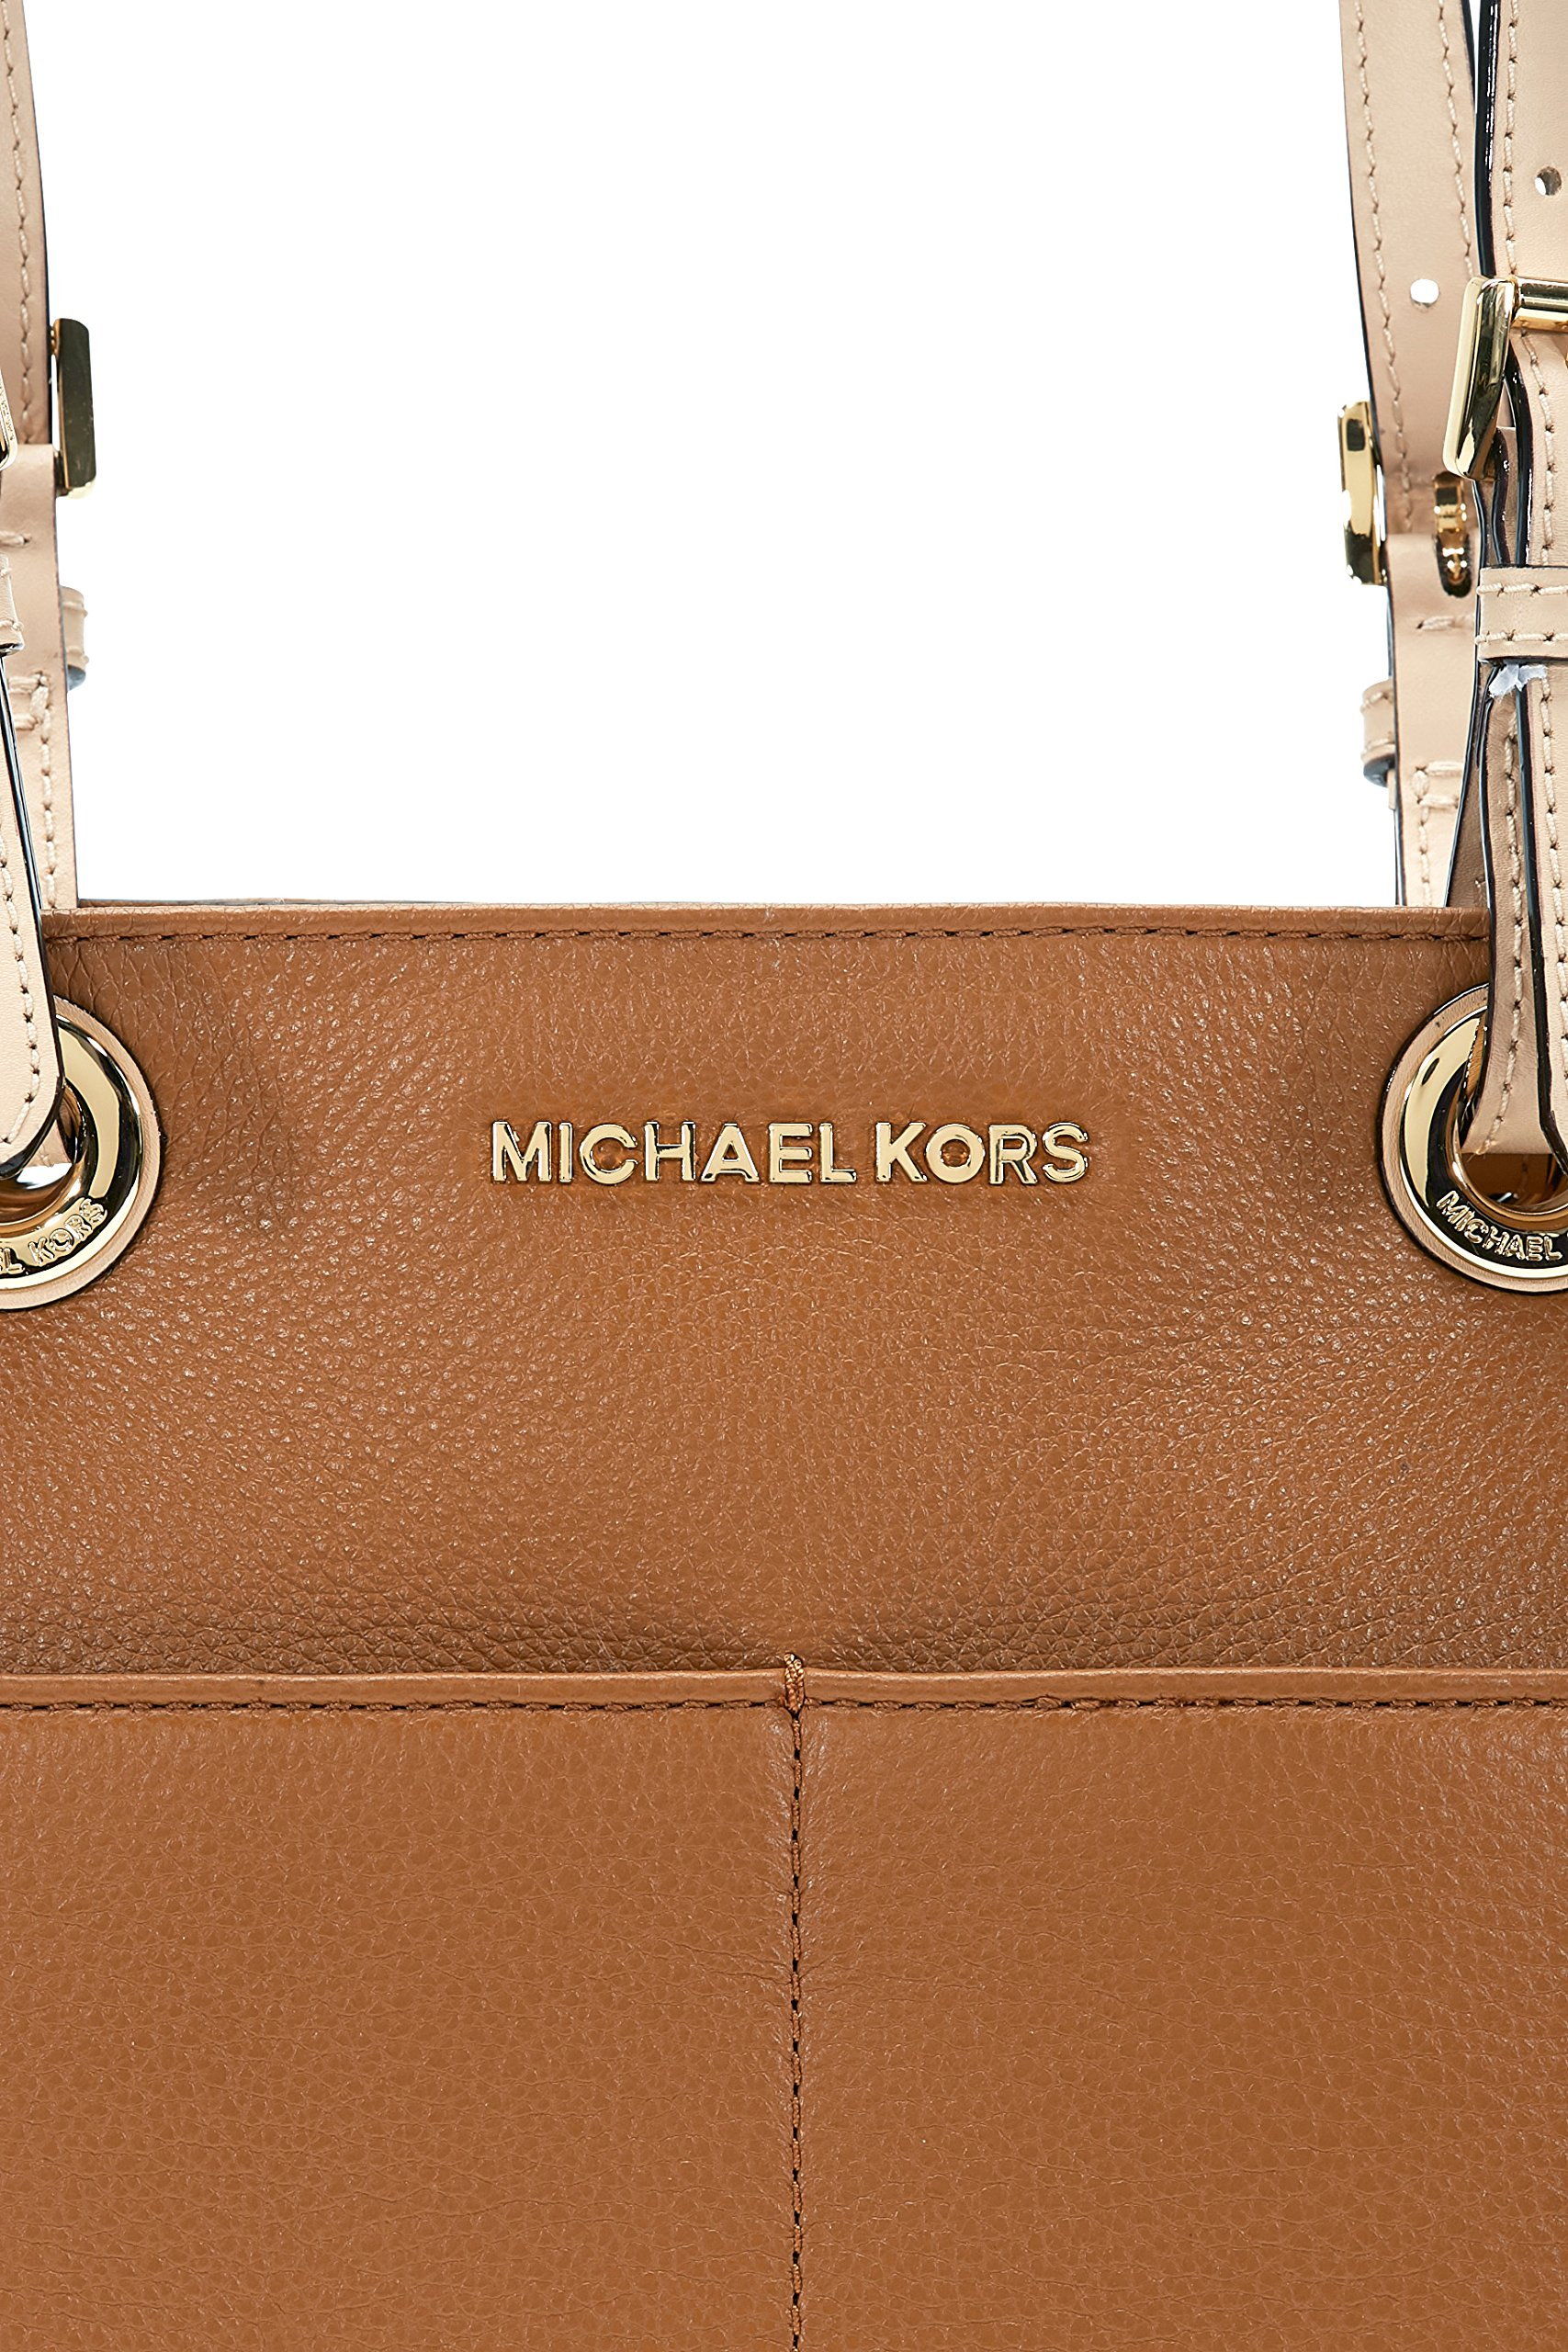 Michael Kors Bedford Leather Tote - Acorn by Michael Kors (Image #4)